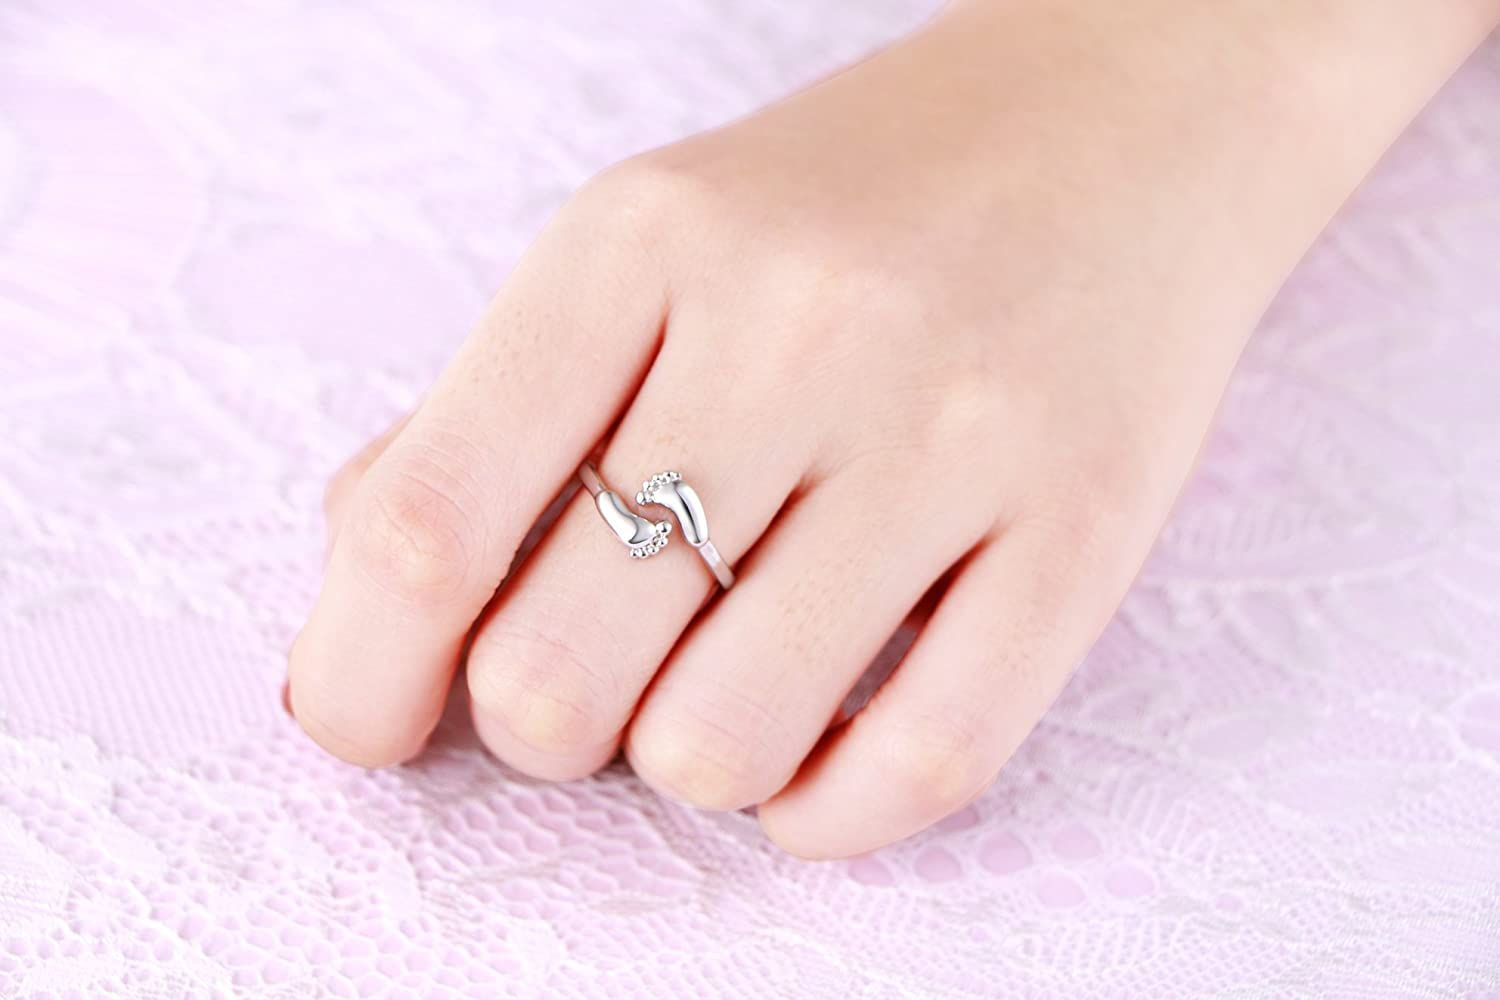 Amazon.com: LINLIN FINE JEWELRY Baby Feet Ring 925 Sterling Silver ...